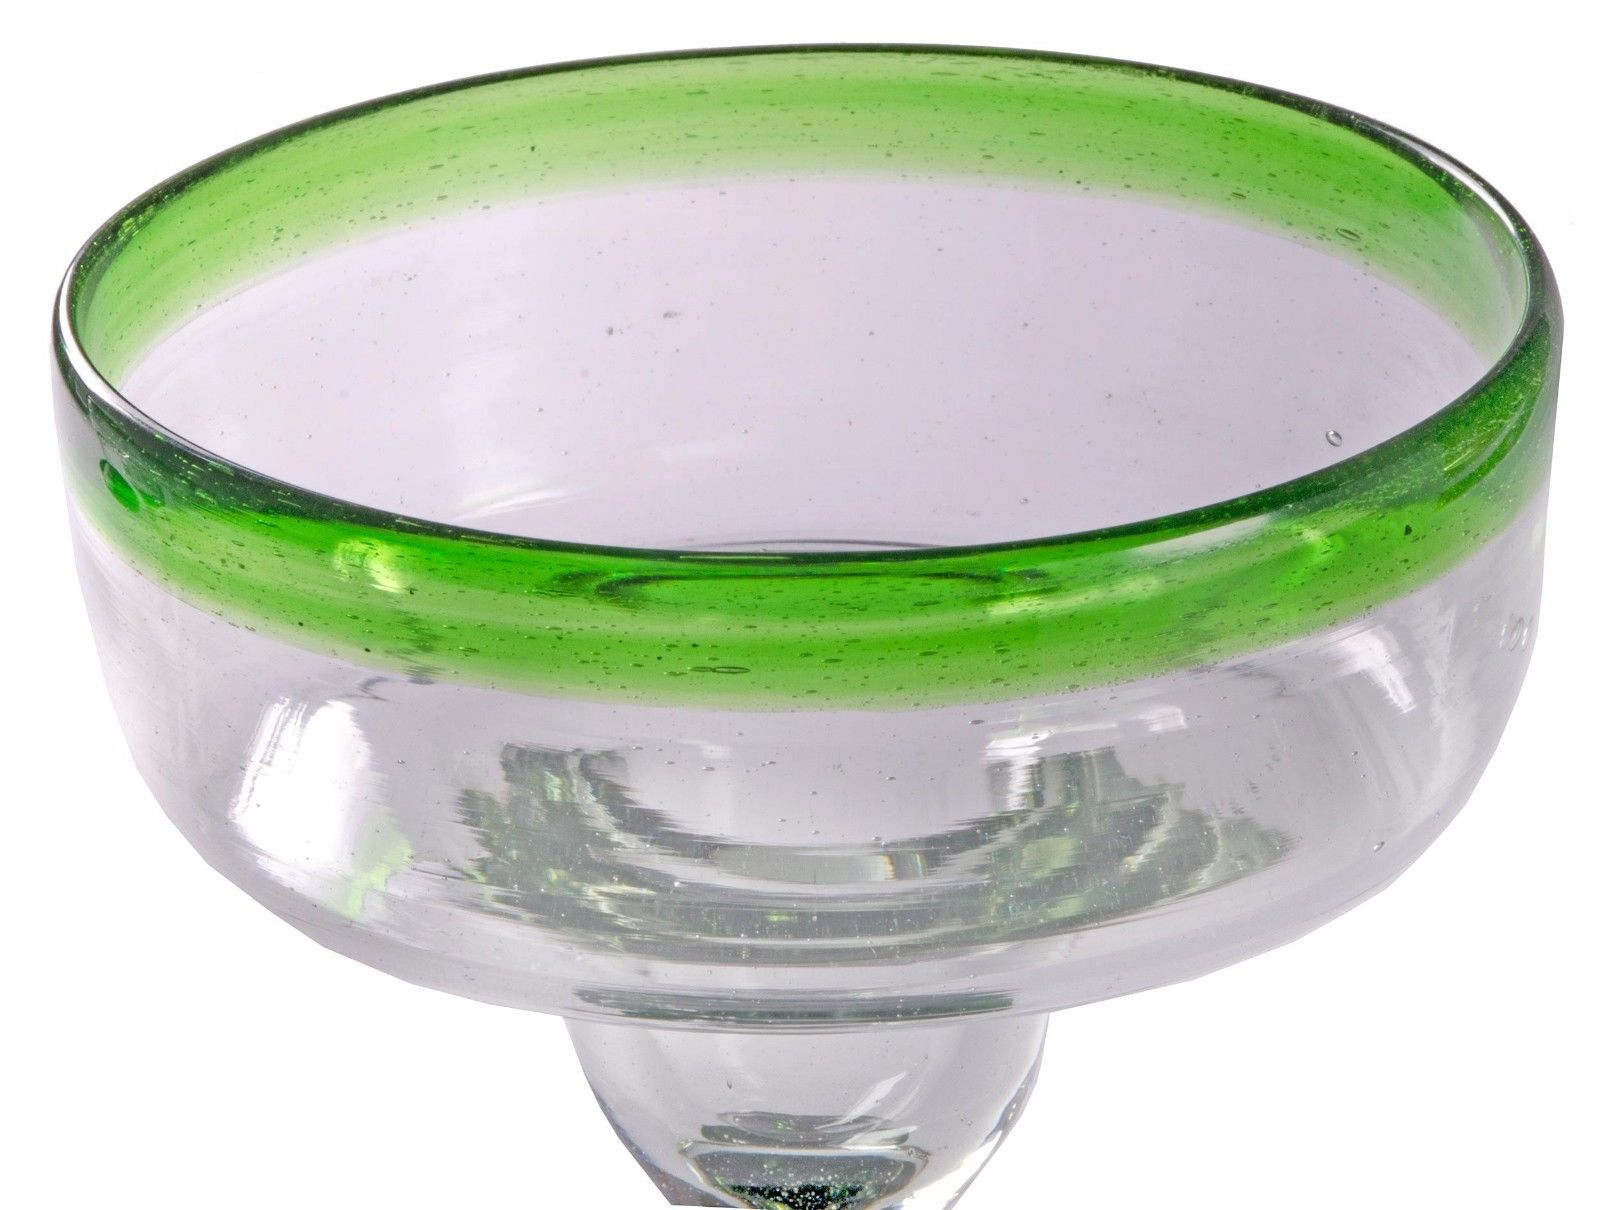 Orion Mexican Glassware Green Rim 12 oz Margarita/Coupette - Set of 4 - Orion's Table Mexican Glassware